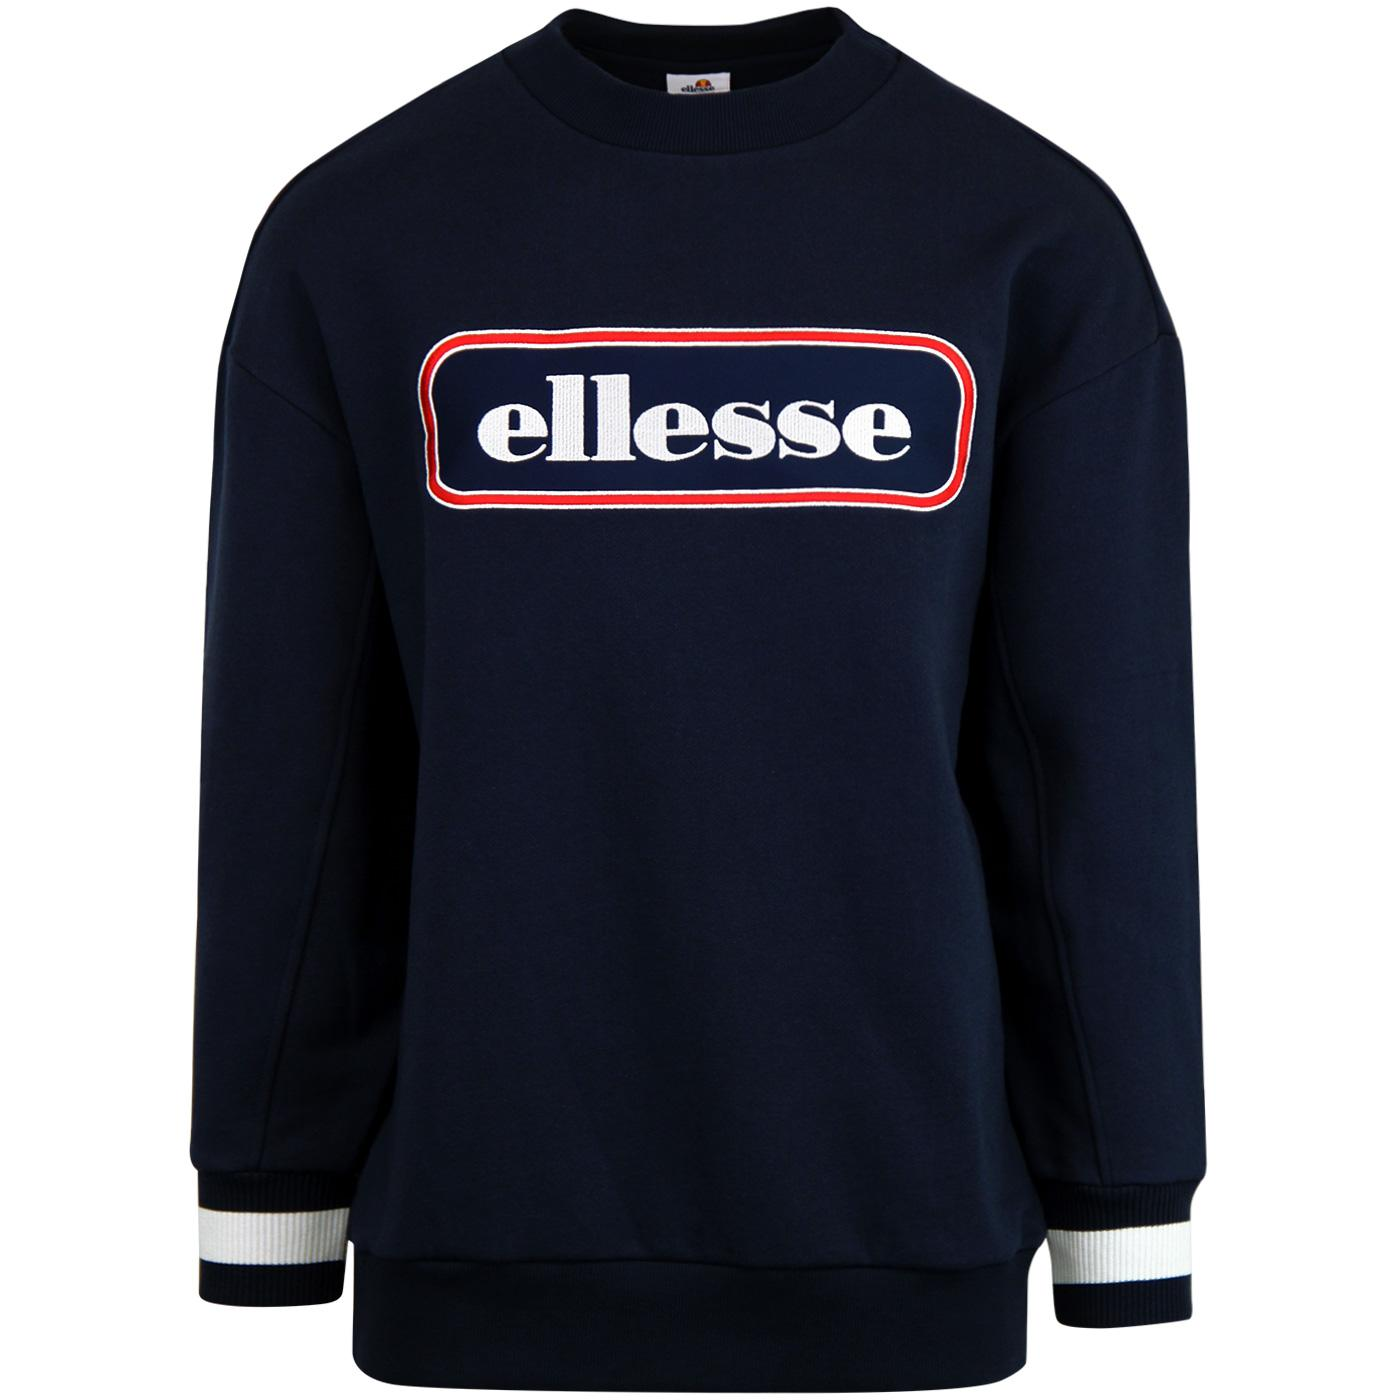 Durono ELLESSE Men's Retro Oversized Sweatshirt N